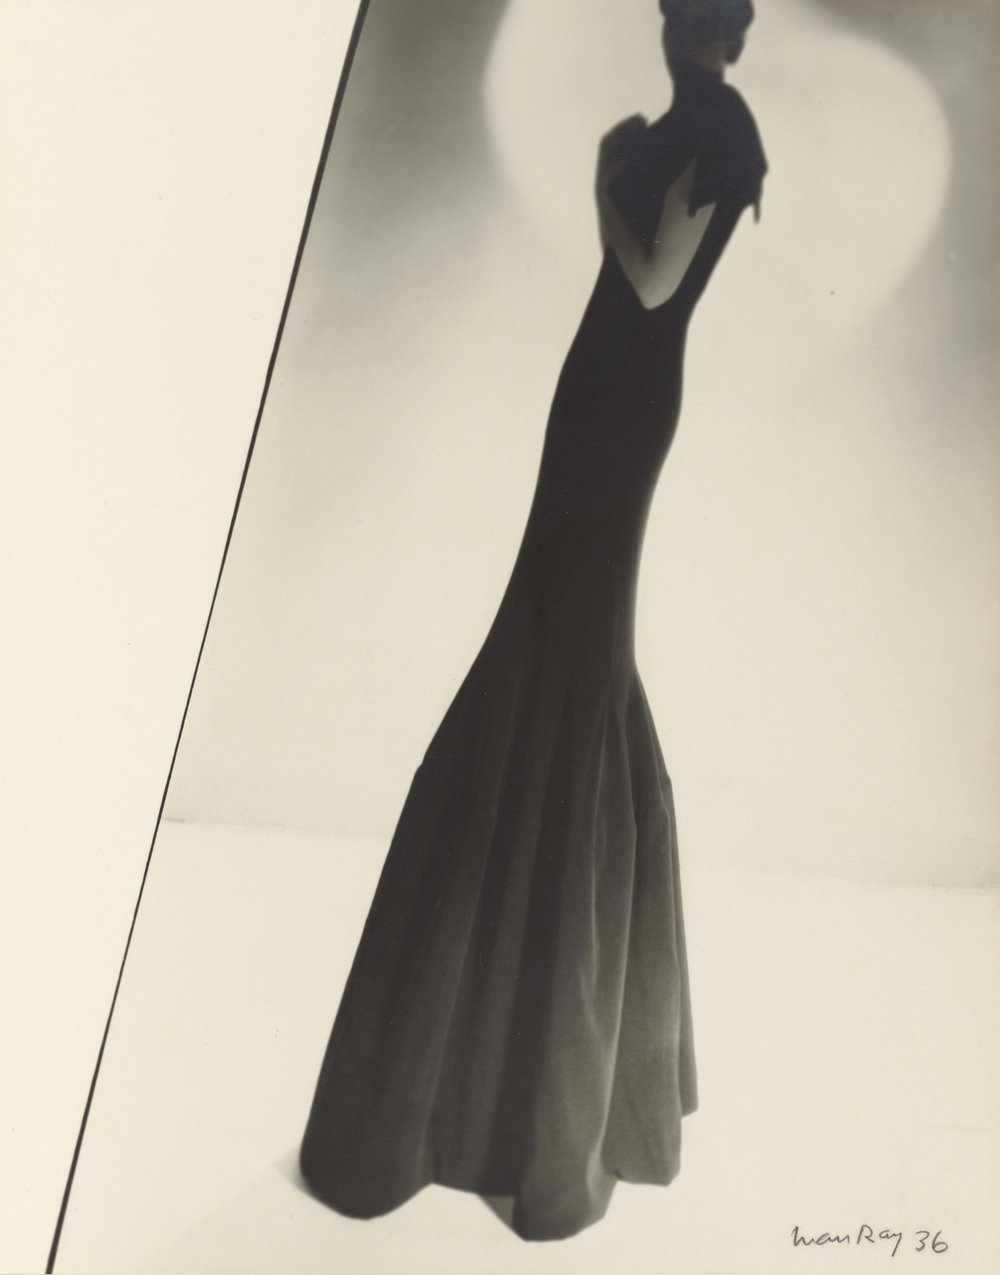 MAN RAY (American, 1890–1976),  Model Wearing a Gown by Augustabernard , 1936. Gelatin silver print 28.9 × 22.7 cm (113⁄8 × 815⁄16 in.) Los Angeles, J. Paul Getty Museum, 84.XM.1000.53. © Man Ray Trust ARS-ADAG